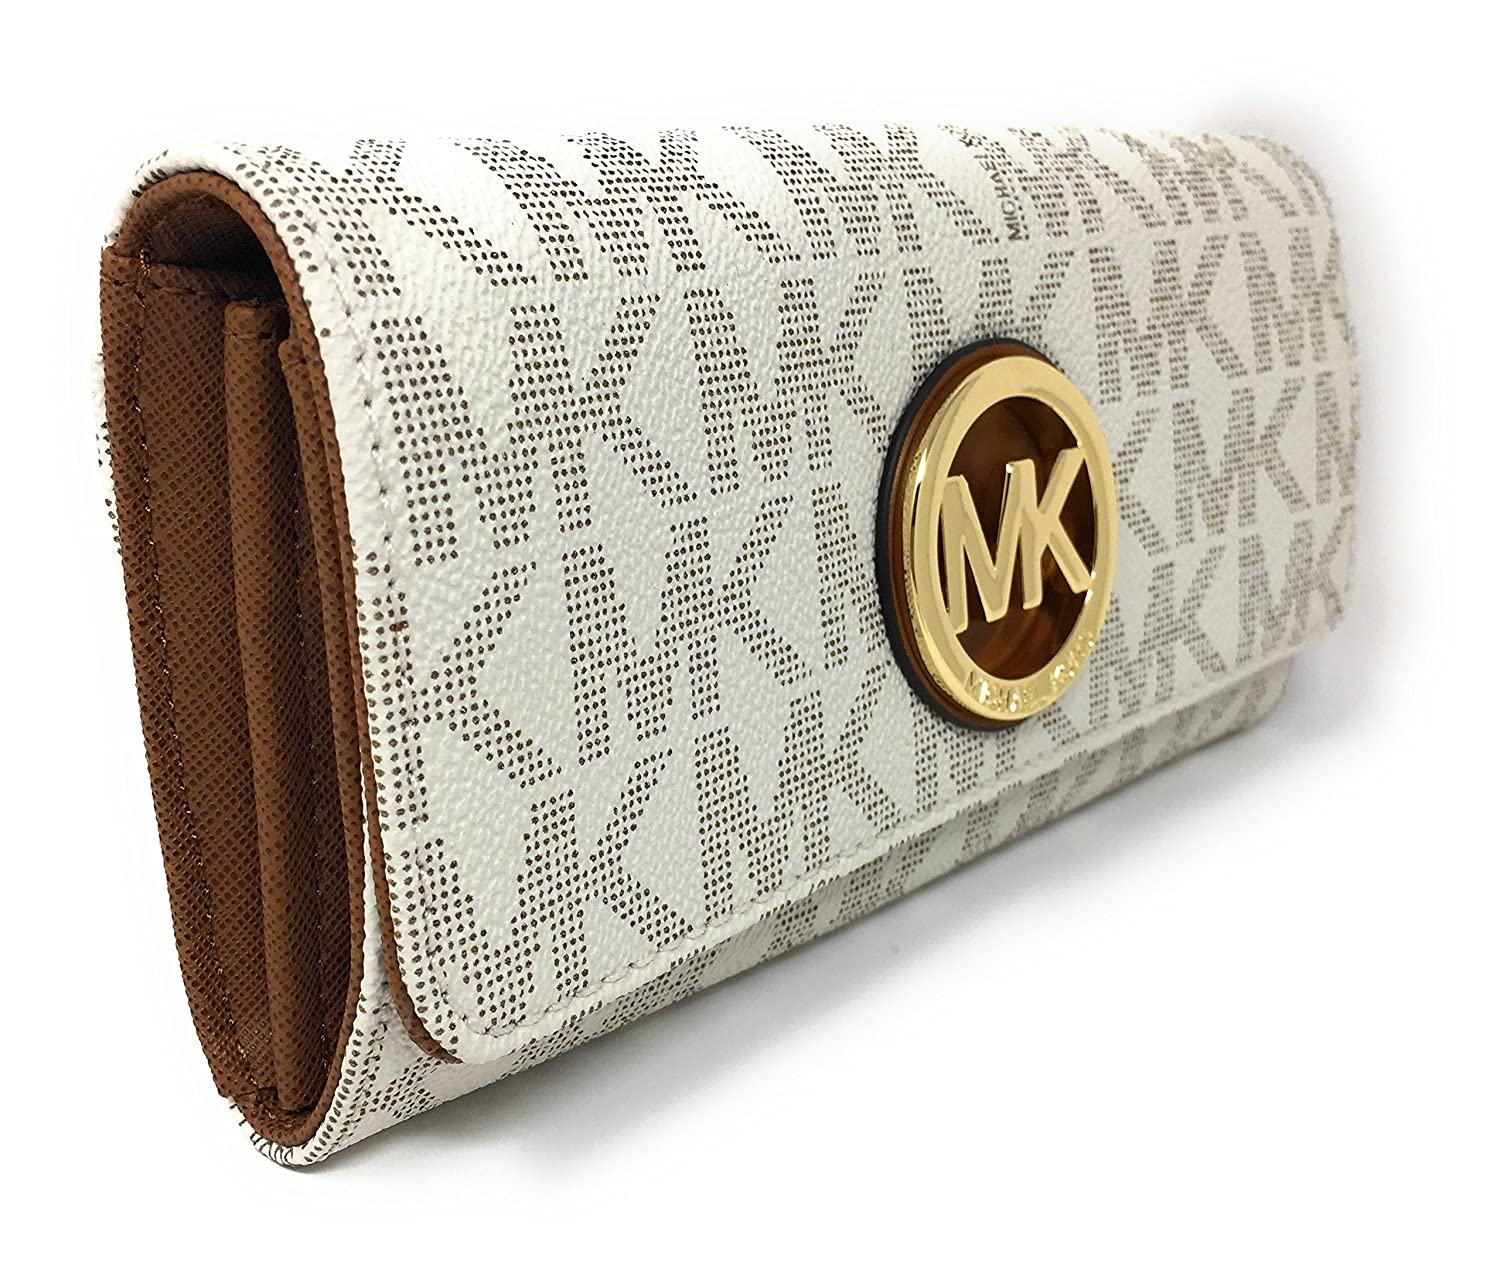 8bcbfc0b344eae Amazon.com: Michael Kors Signature PVC Fulton Flap Wallet (Vanilla),Vanilla,Small:  A Little Bit Of Fashion